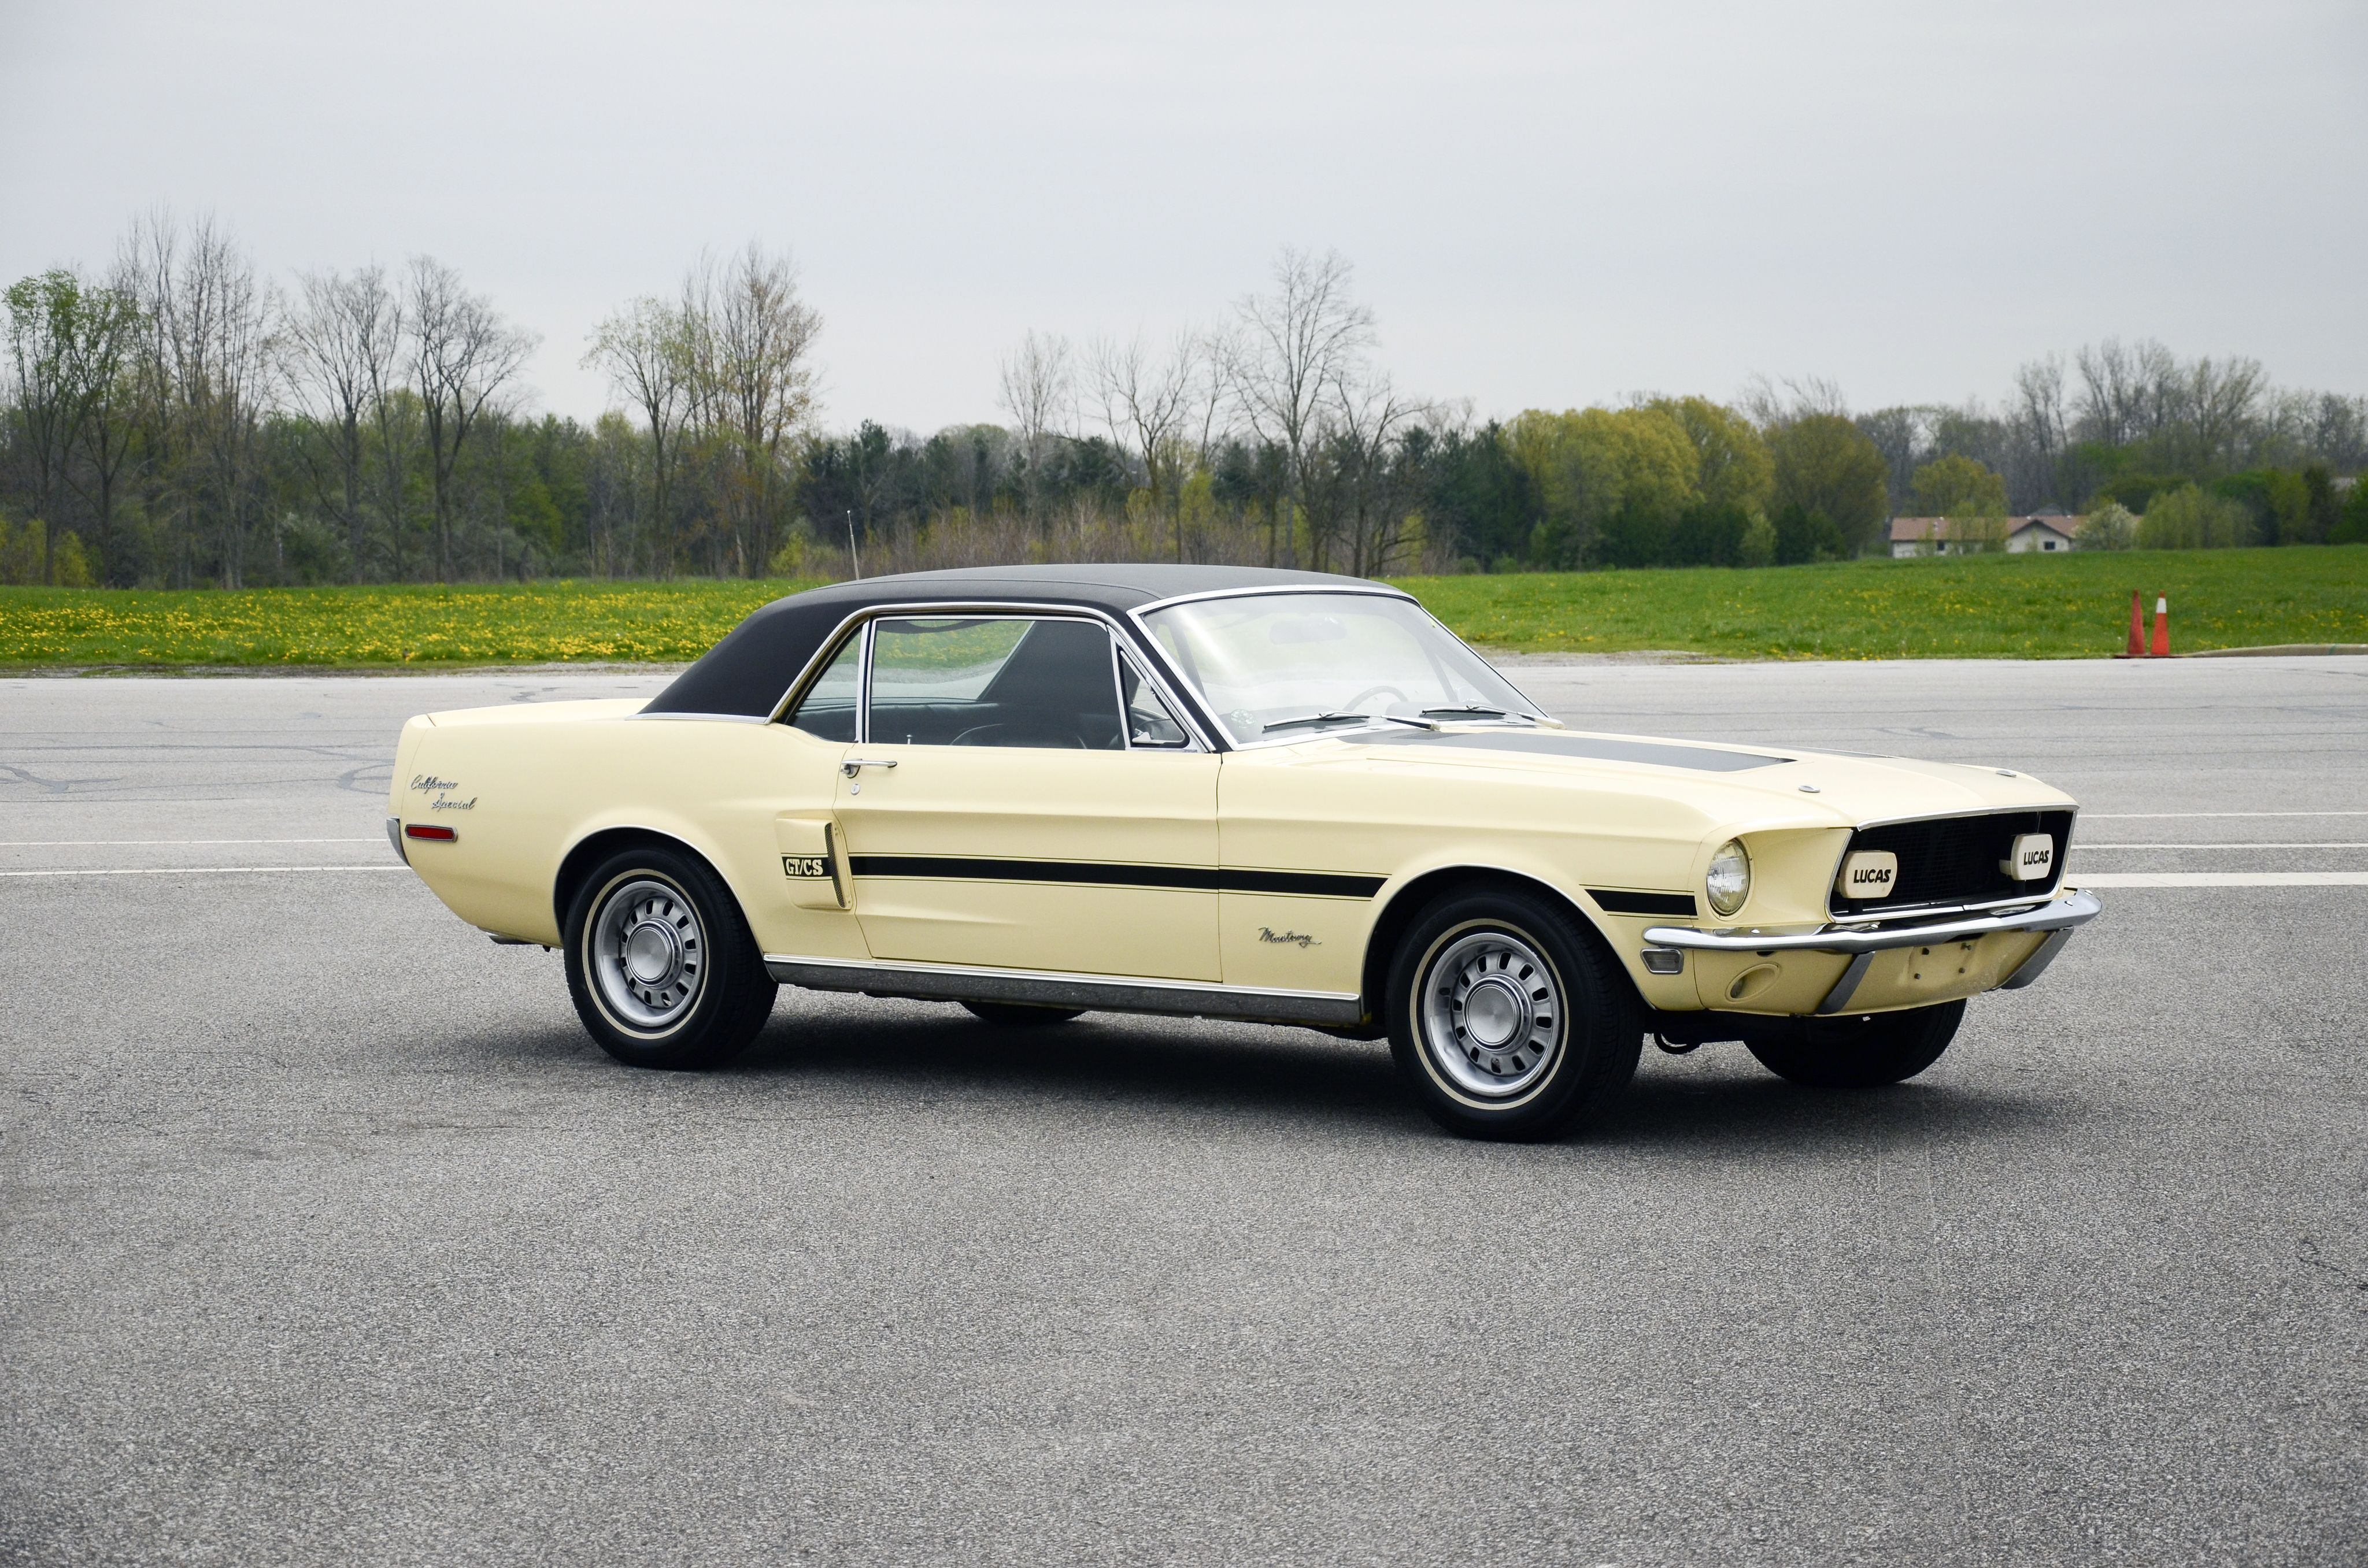 1968 Ford Mustang Gt California Special Mustang Mustang California Special Classic Mustang